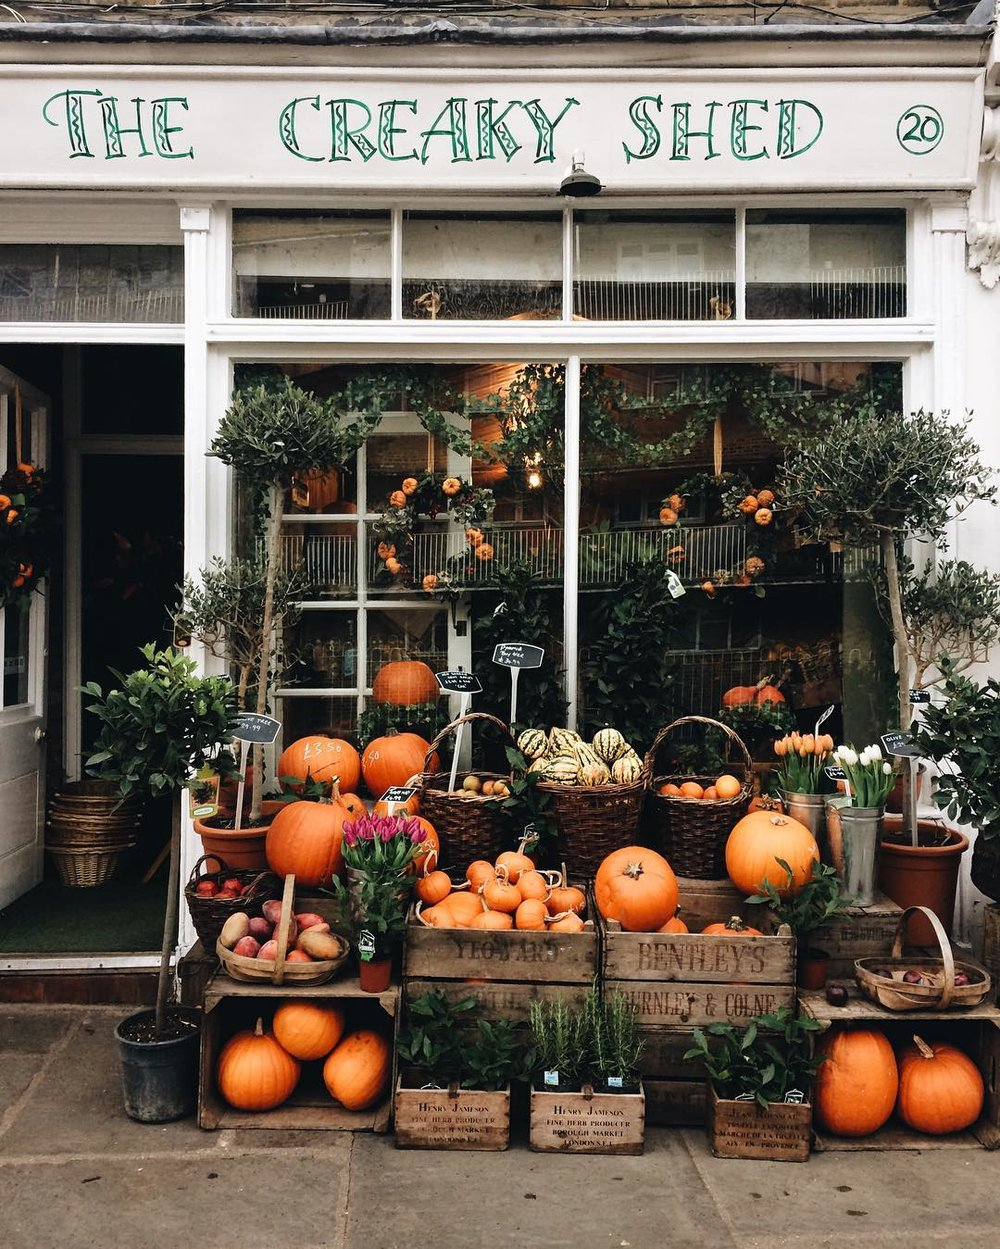 Buy your pumpkins here! Photo: @alice.and.lyra